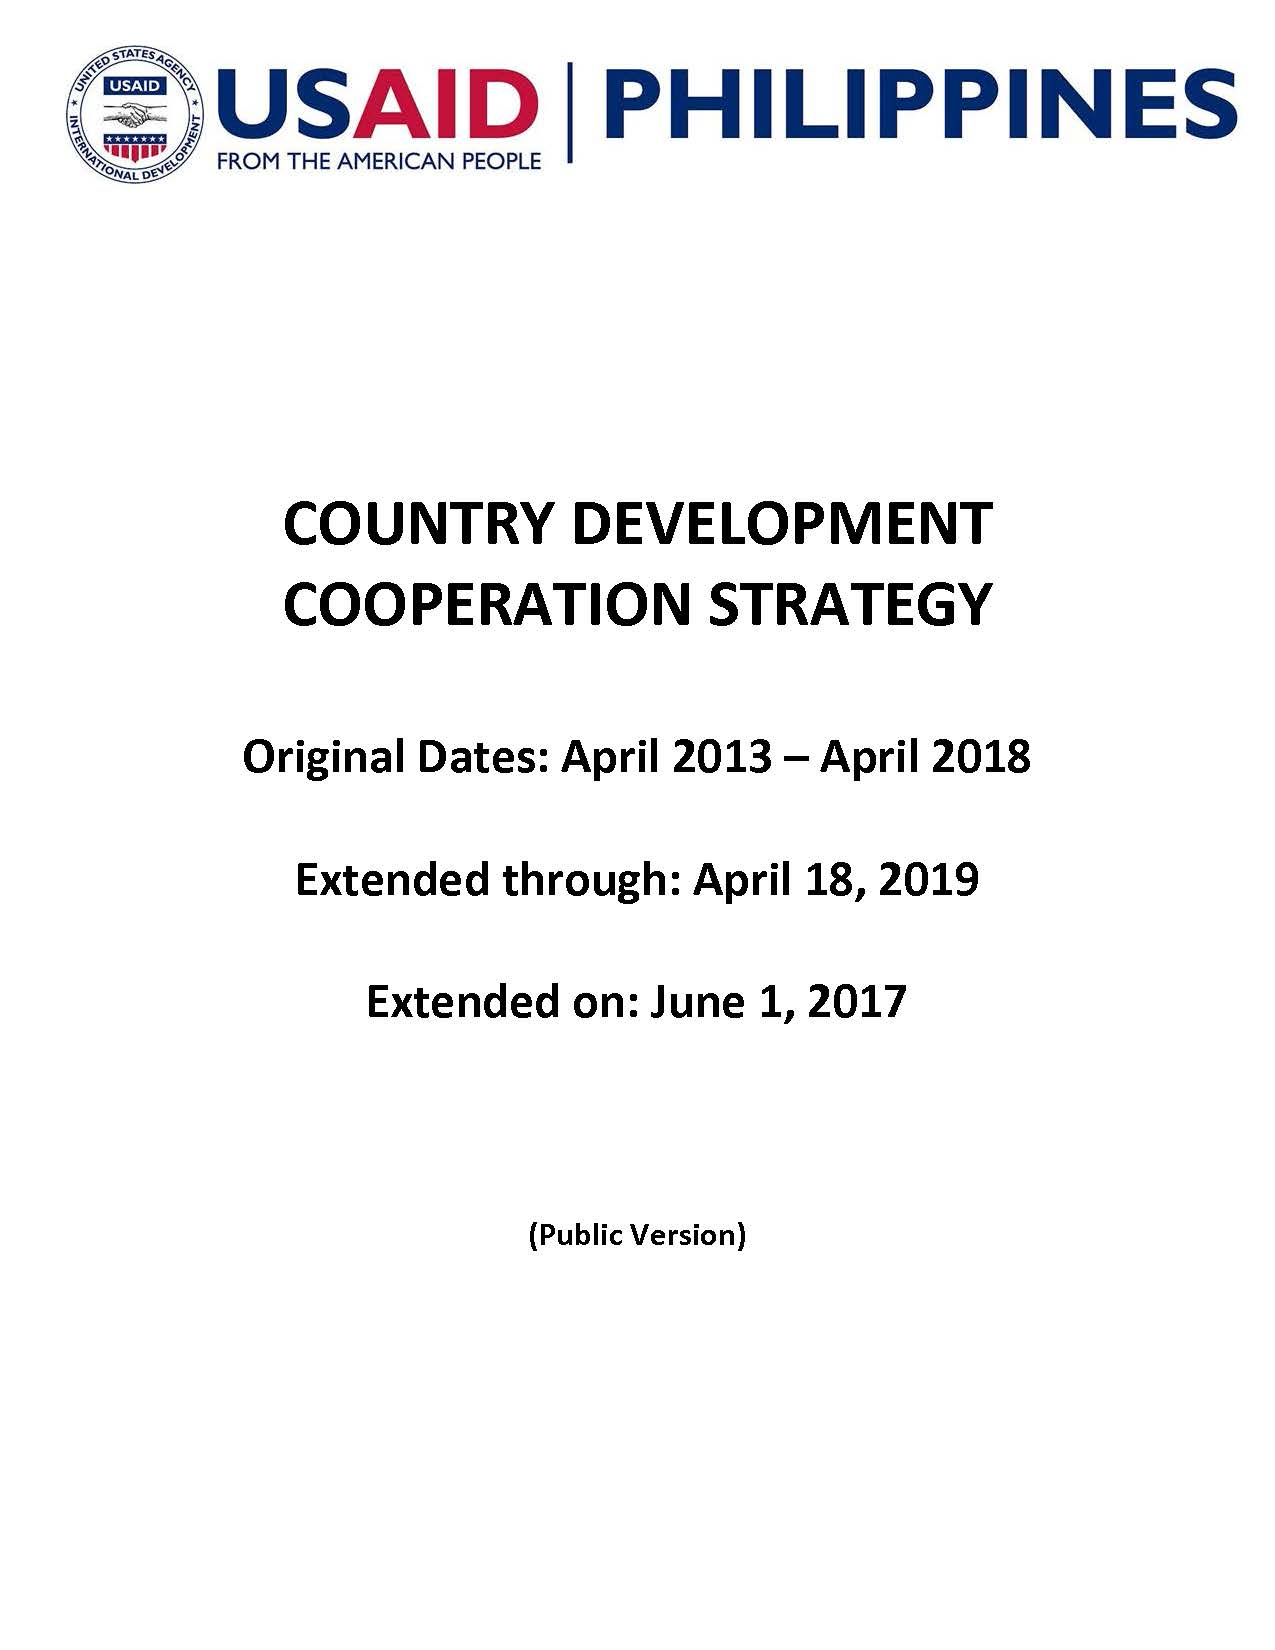 Philippines Country Development Cooperation Strategy 2013-2018